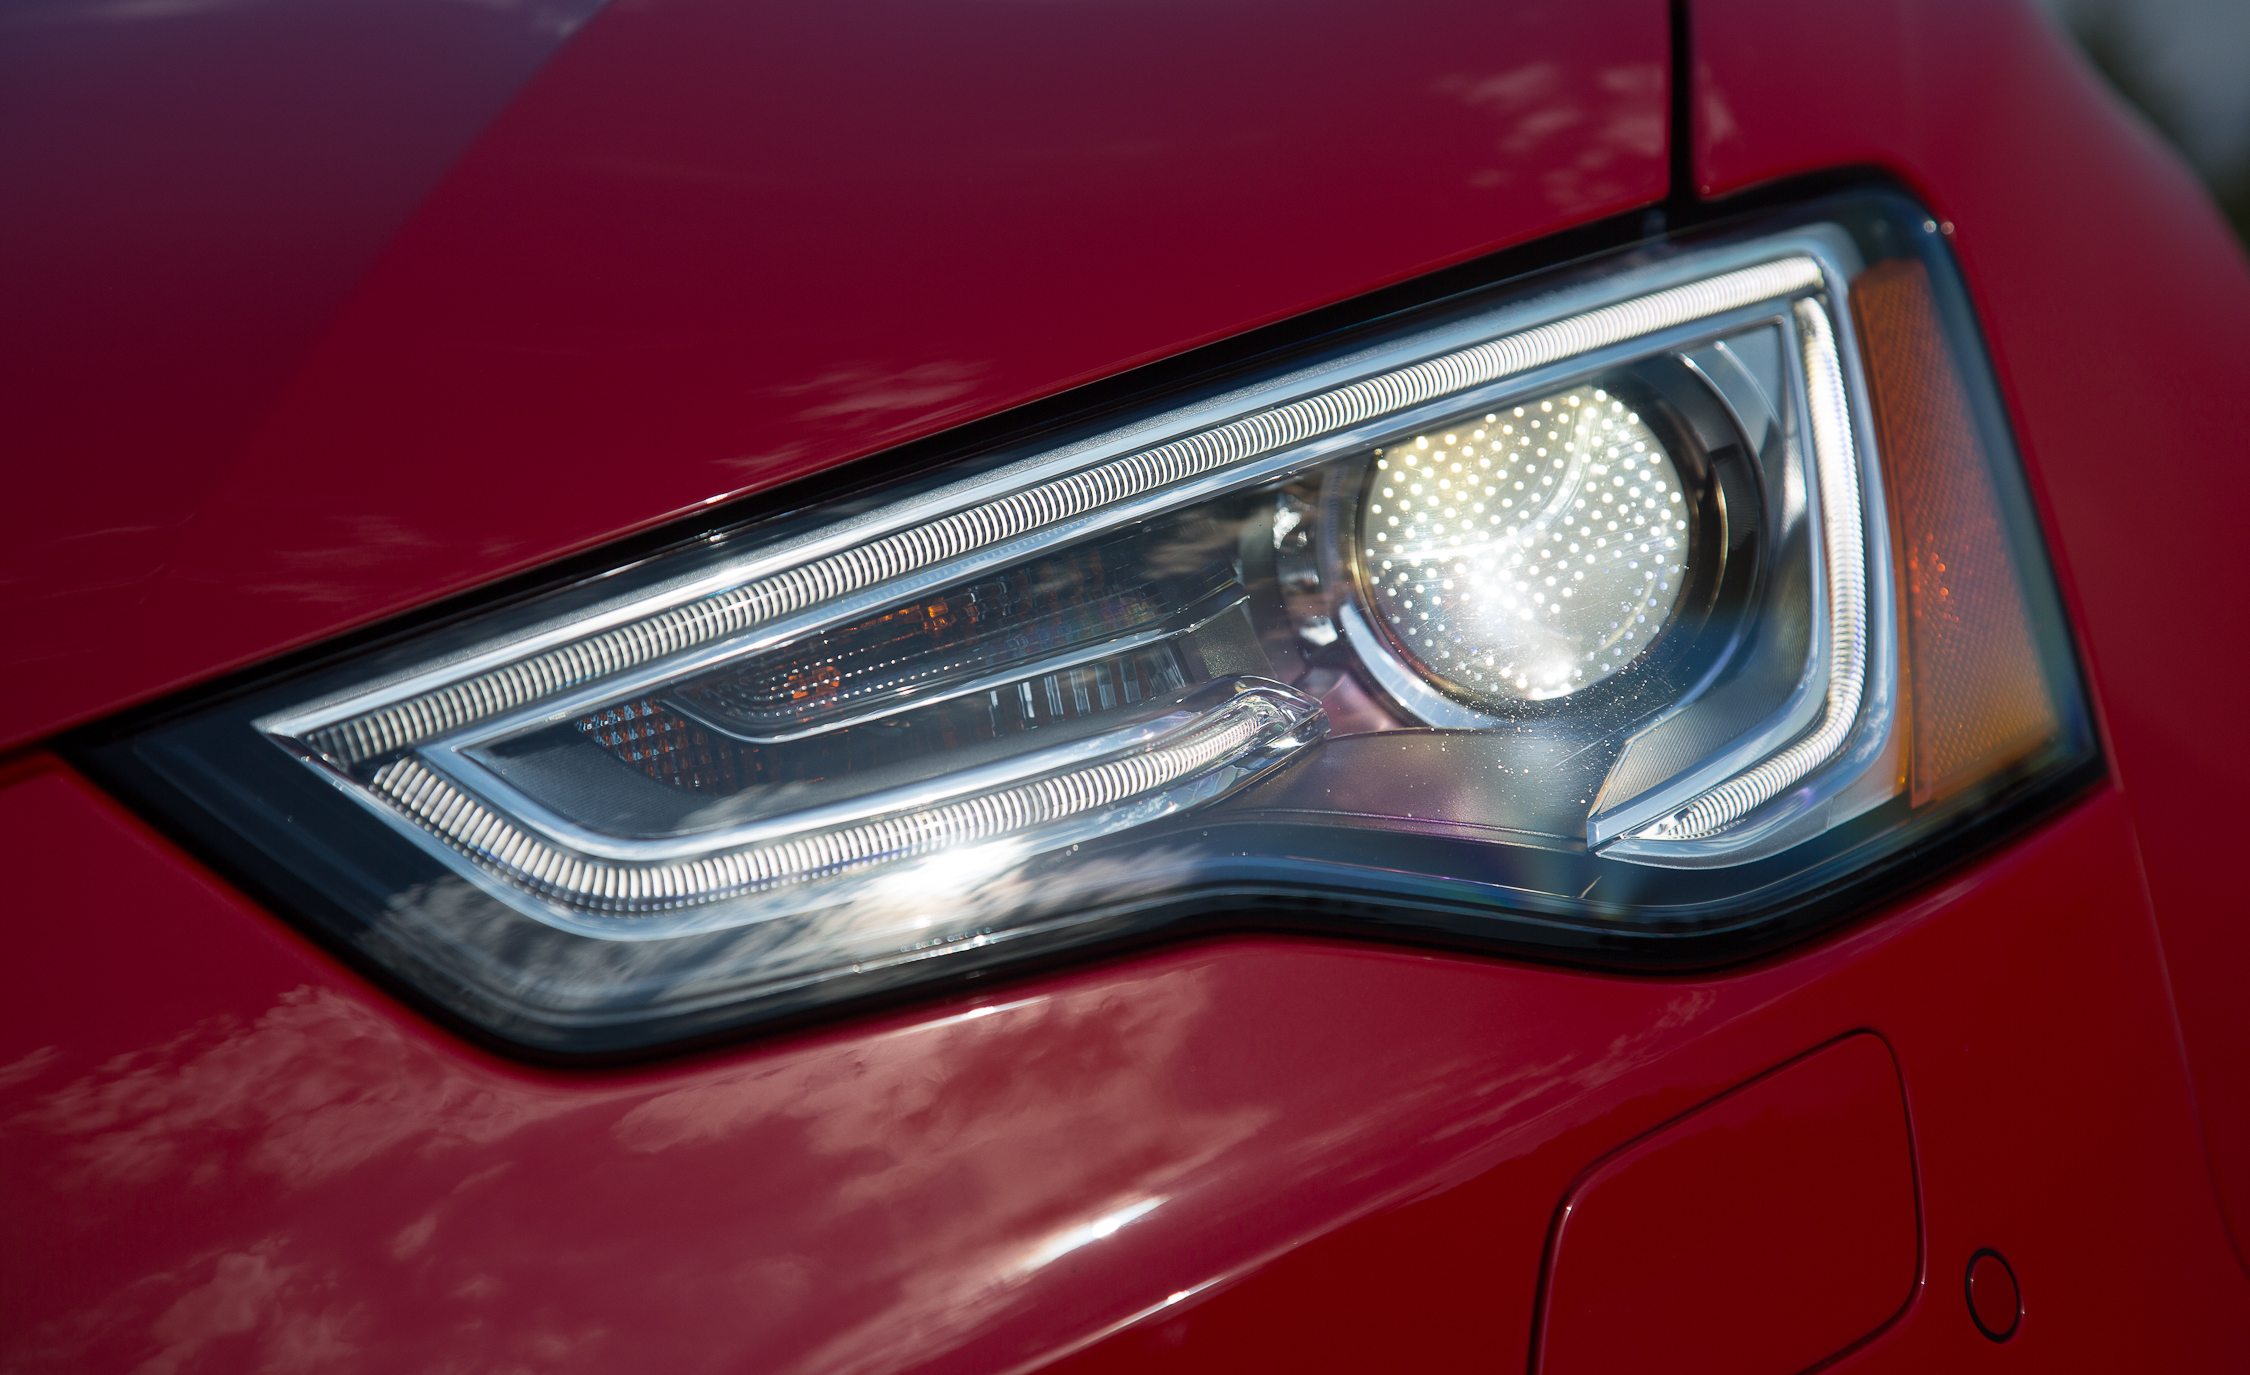 2013 Audi RS 5 Exterior View Headlight (View 15 of 41)